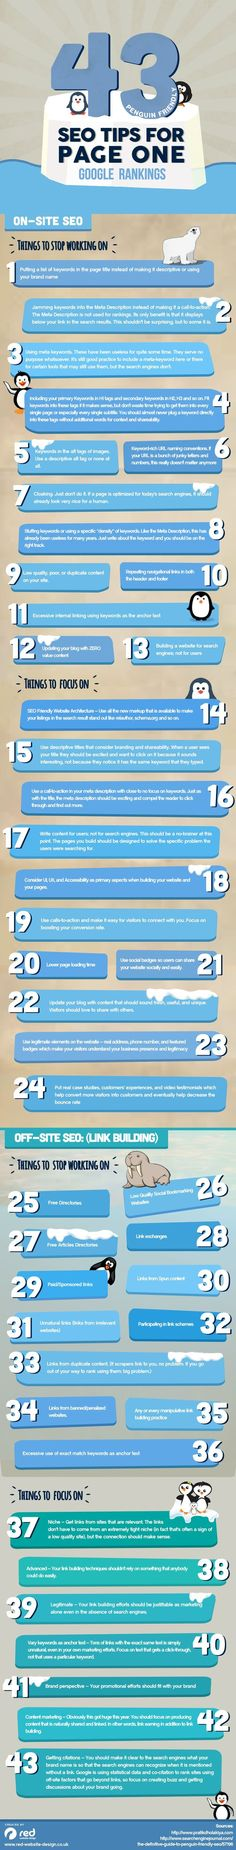 43 Penguin Friendly SEO Tips for Page One Google Rankings [#infographic] #searchmarketing #webdev #searchengineoptimizationagencies,